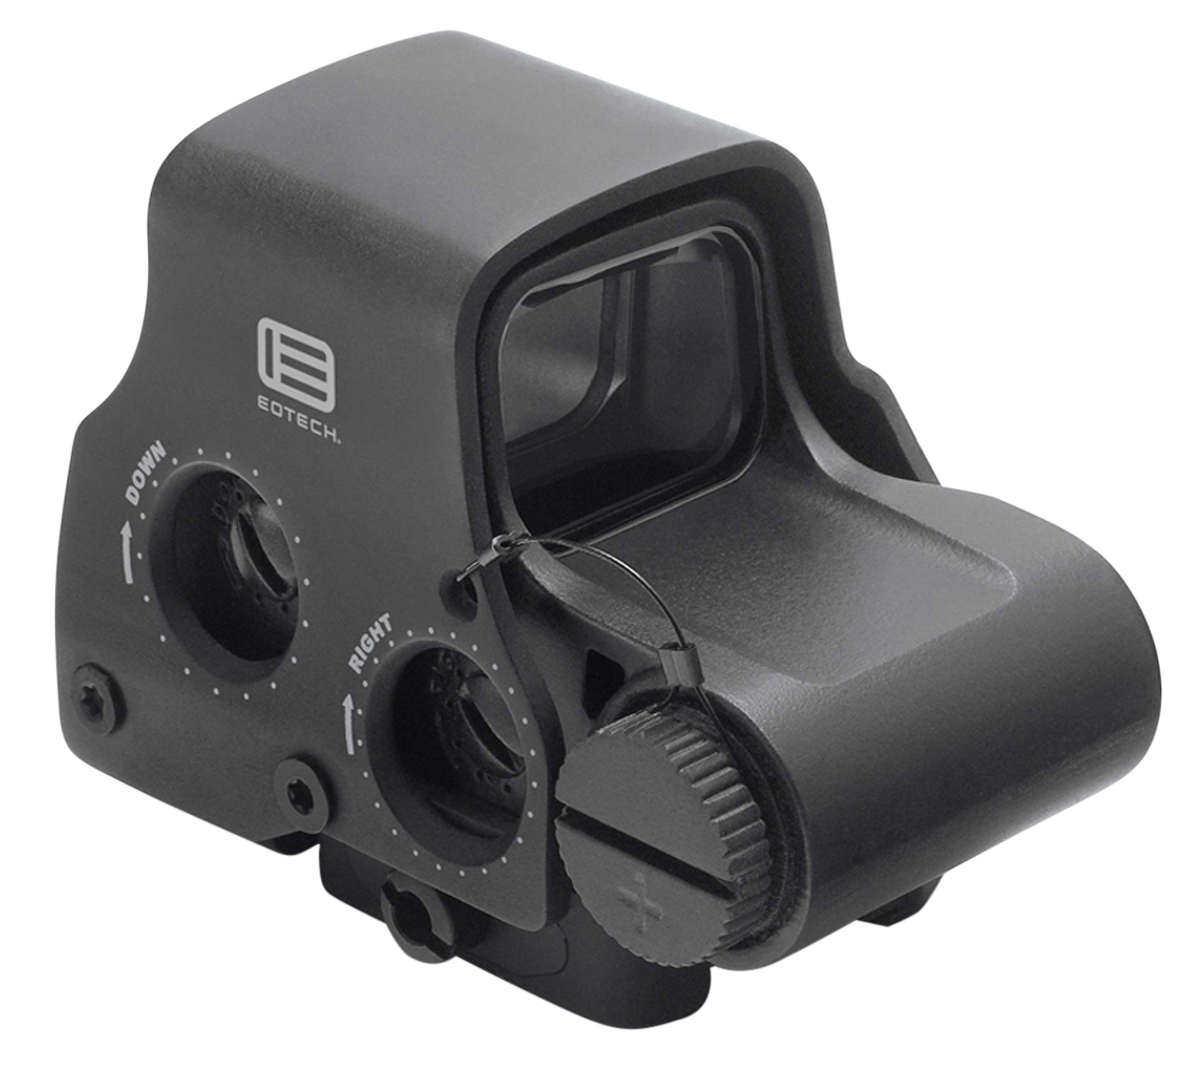 EOTech HWS Model EXPS2-2 Holographic Sight - 1x - Illum. 68 MOA Ring w/ 2 1-MOA Dots - 1 MOA Red Dot - Matte